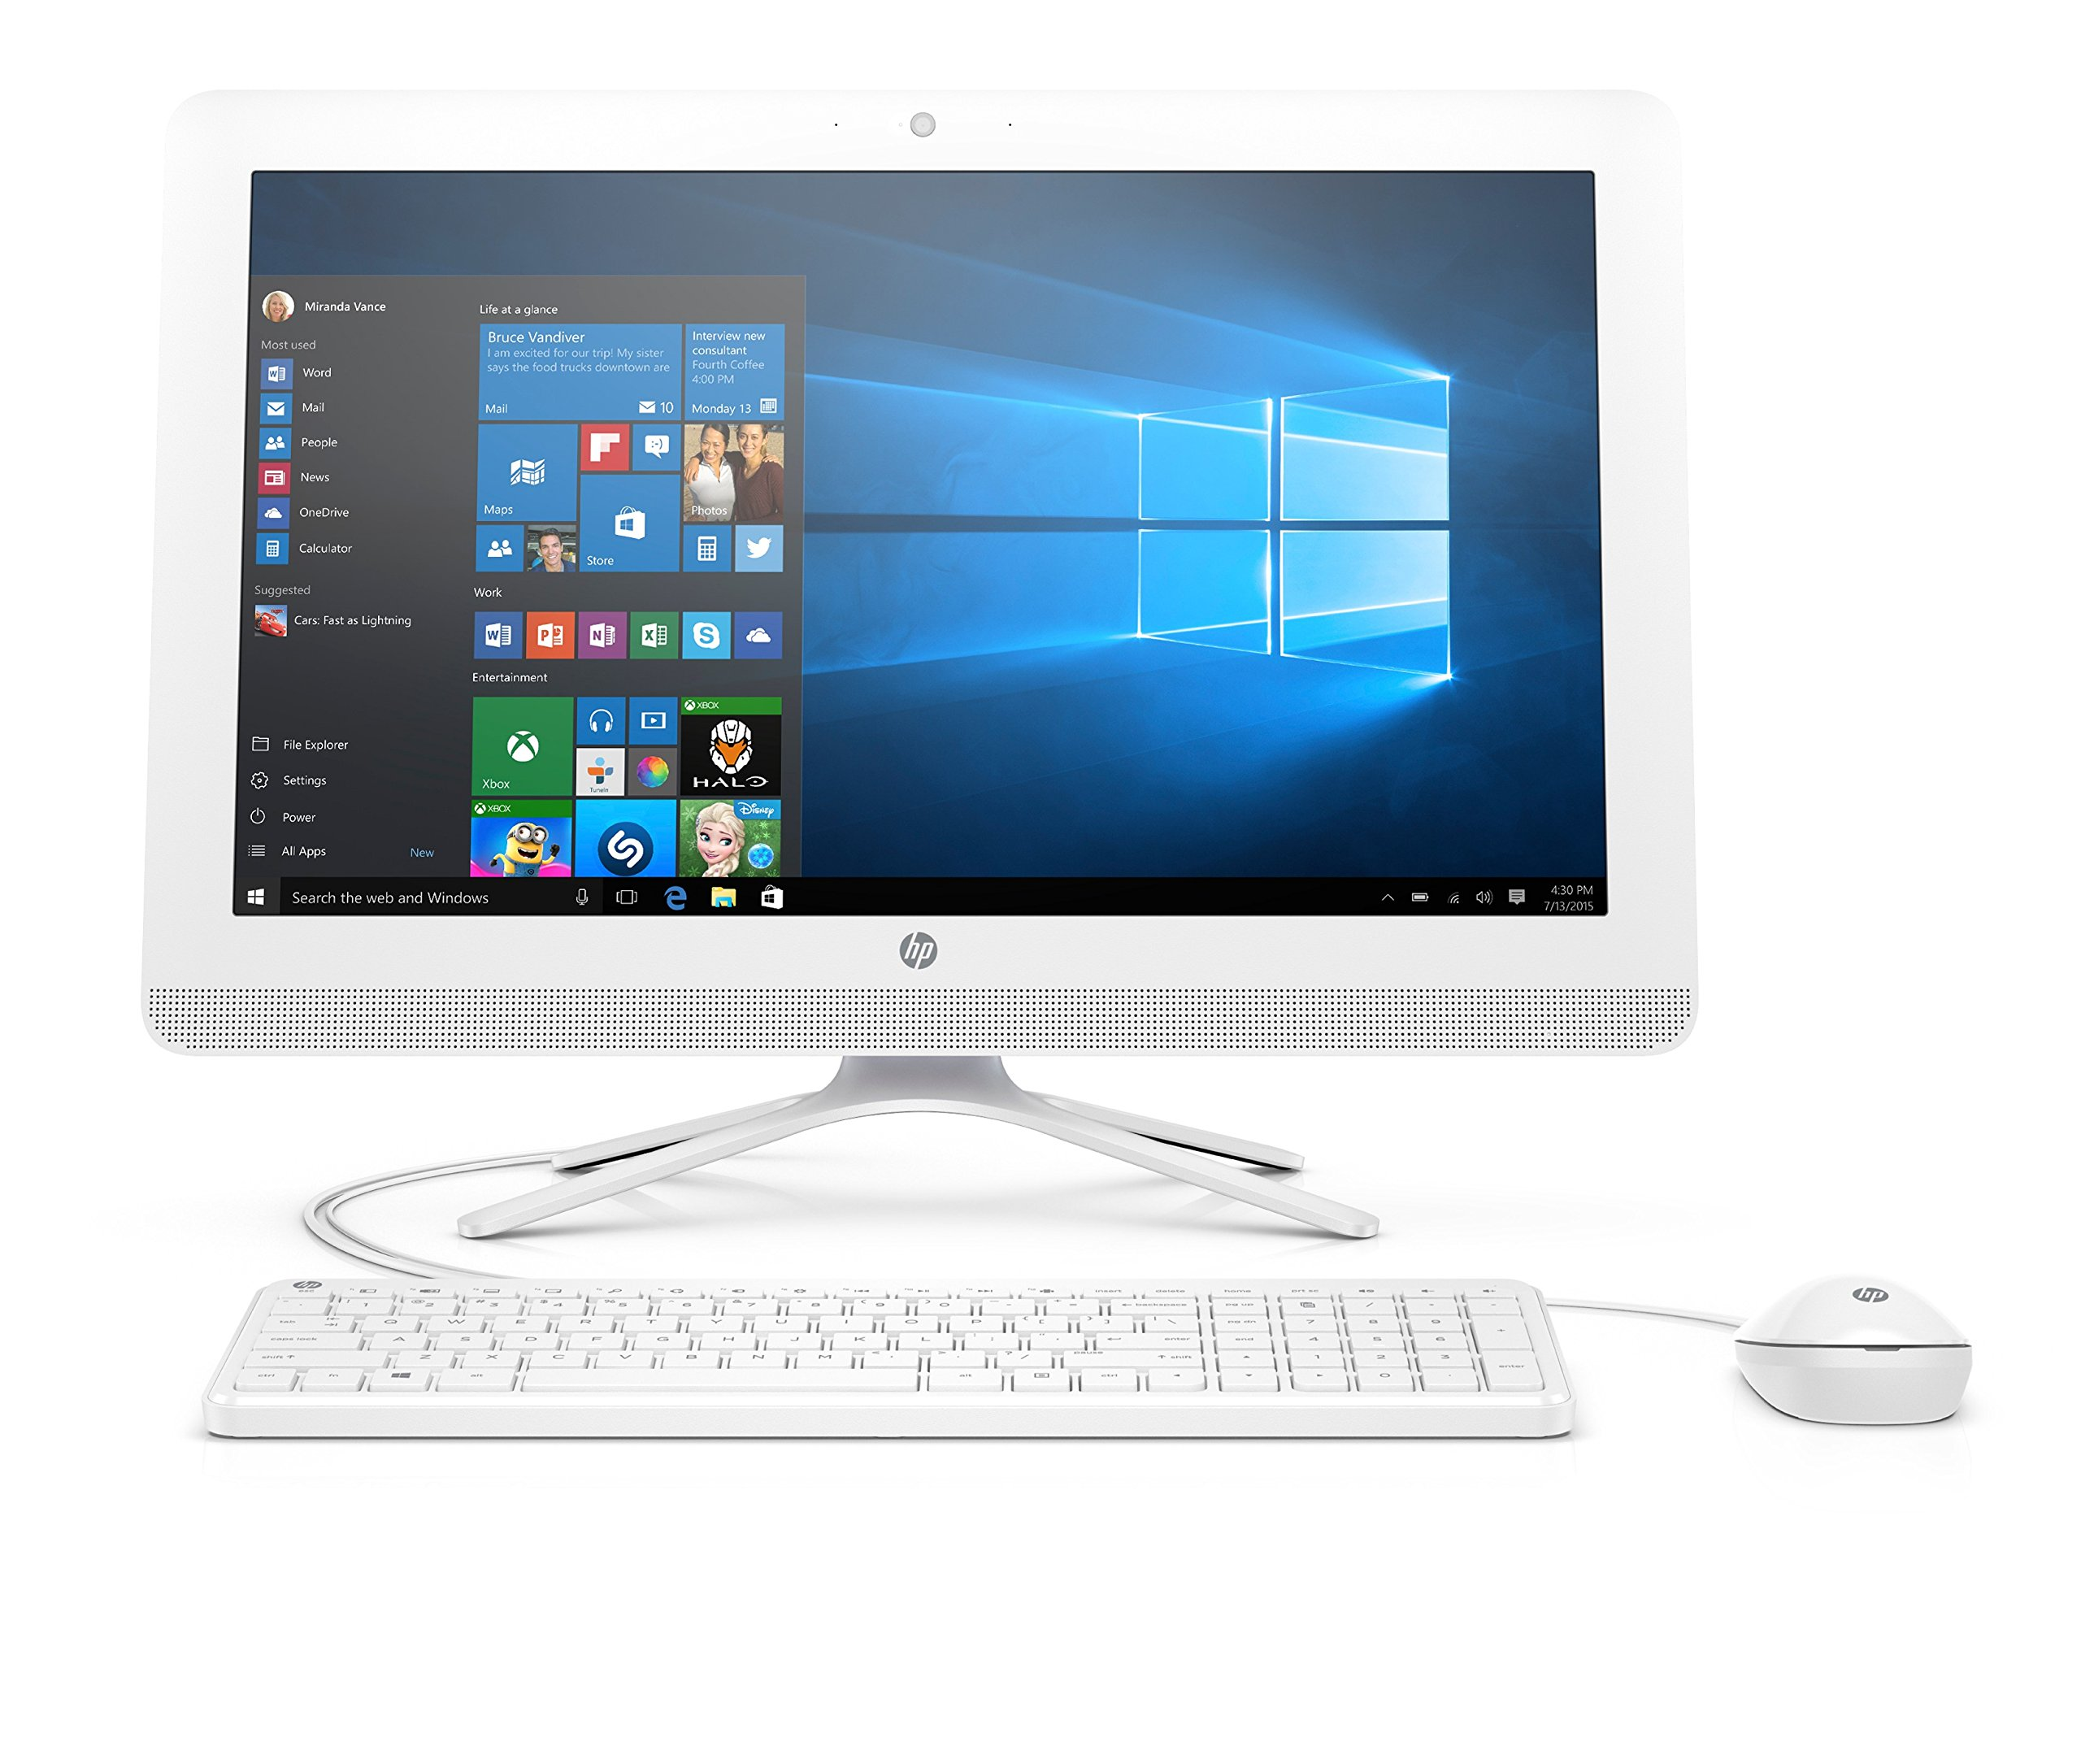 HP 20-c000na 20-Inch All-in-One Desktop PC (Snow White) – (AMD Quad-Core E2-7110 APU, 4 GB RAM, 1 TB HDD, AMD Radeon R2 Graphics, Windows 10)